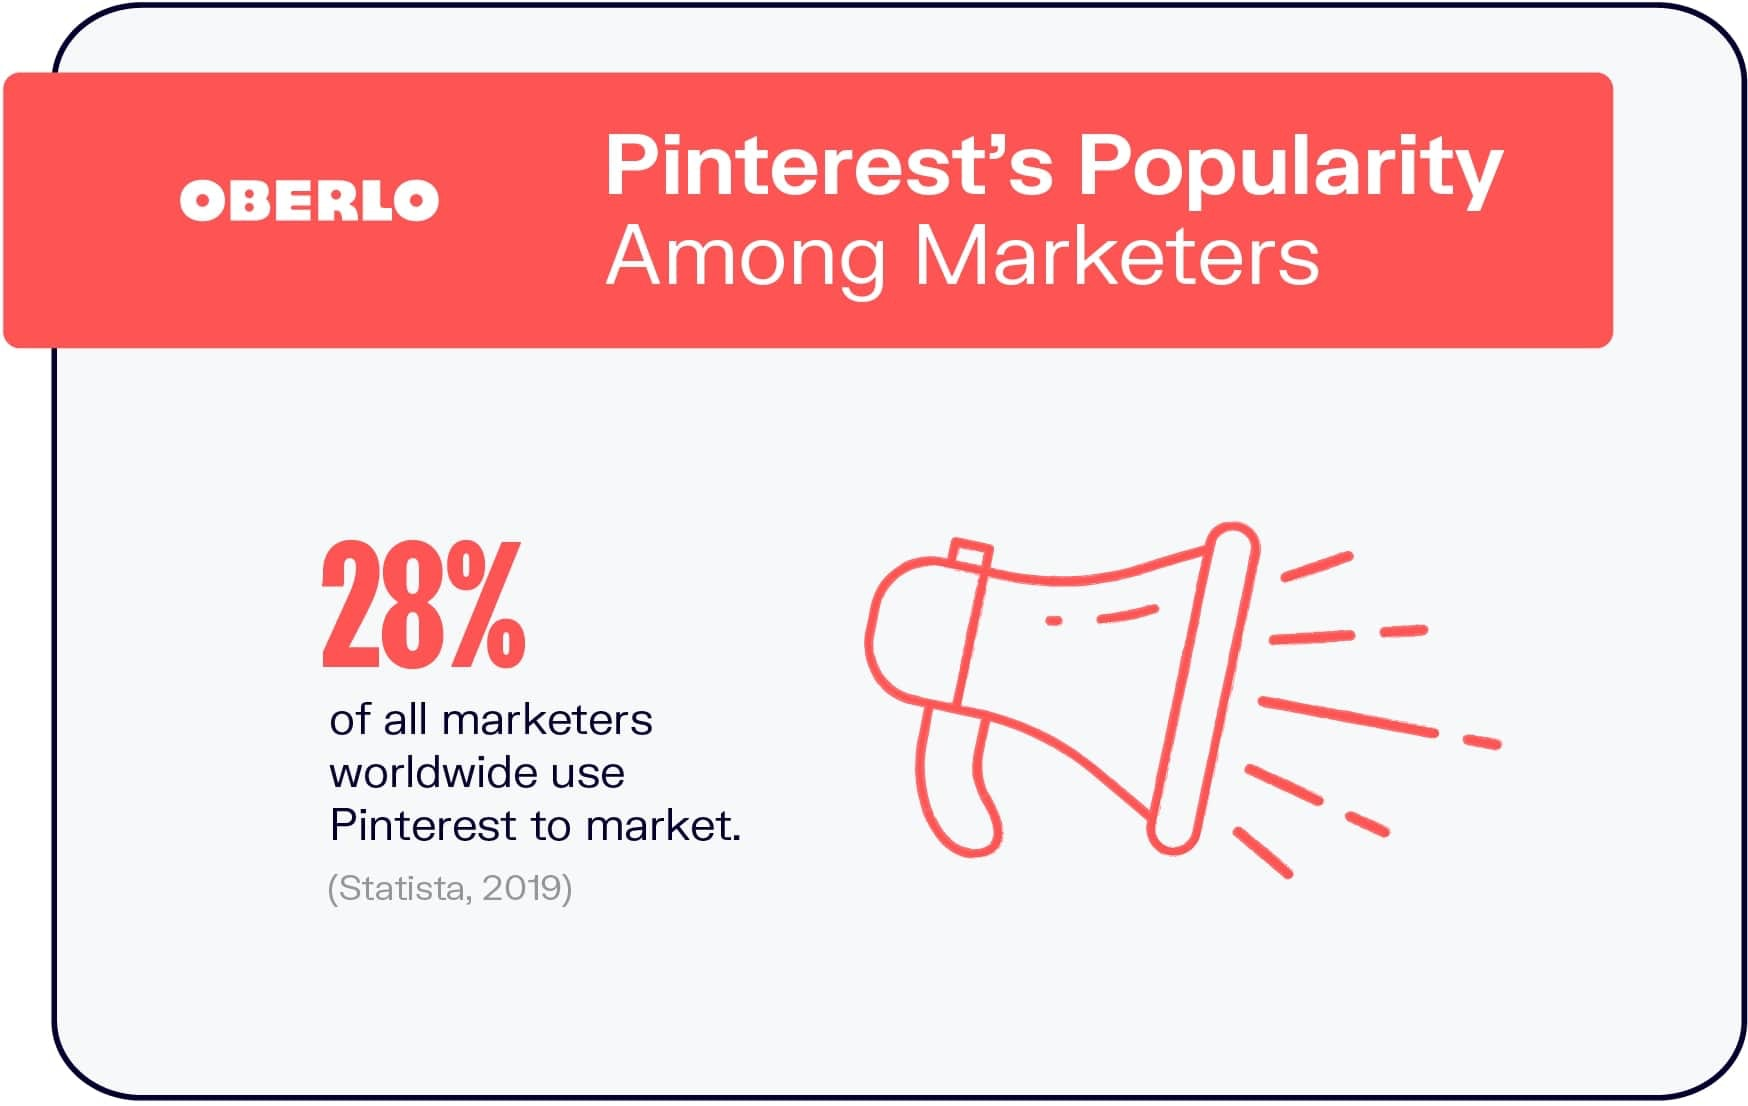 Pinterest's Popularity Among Marketers